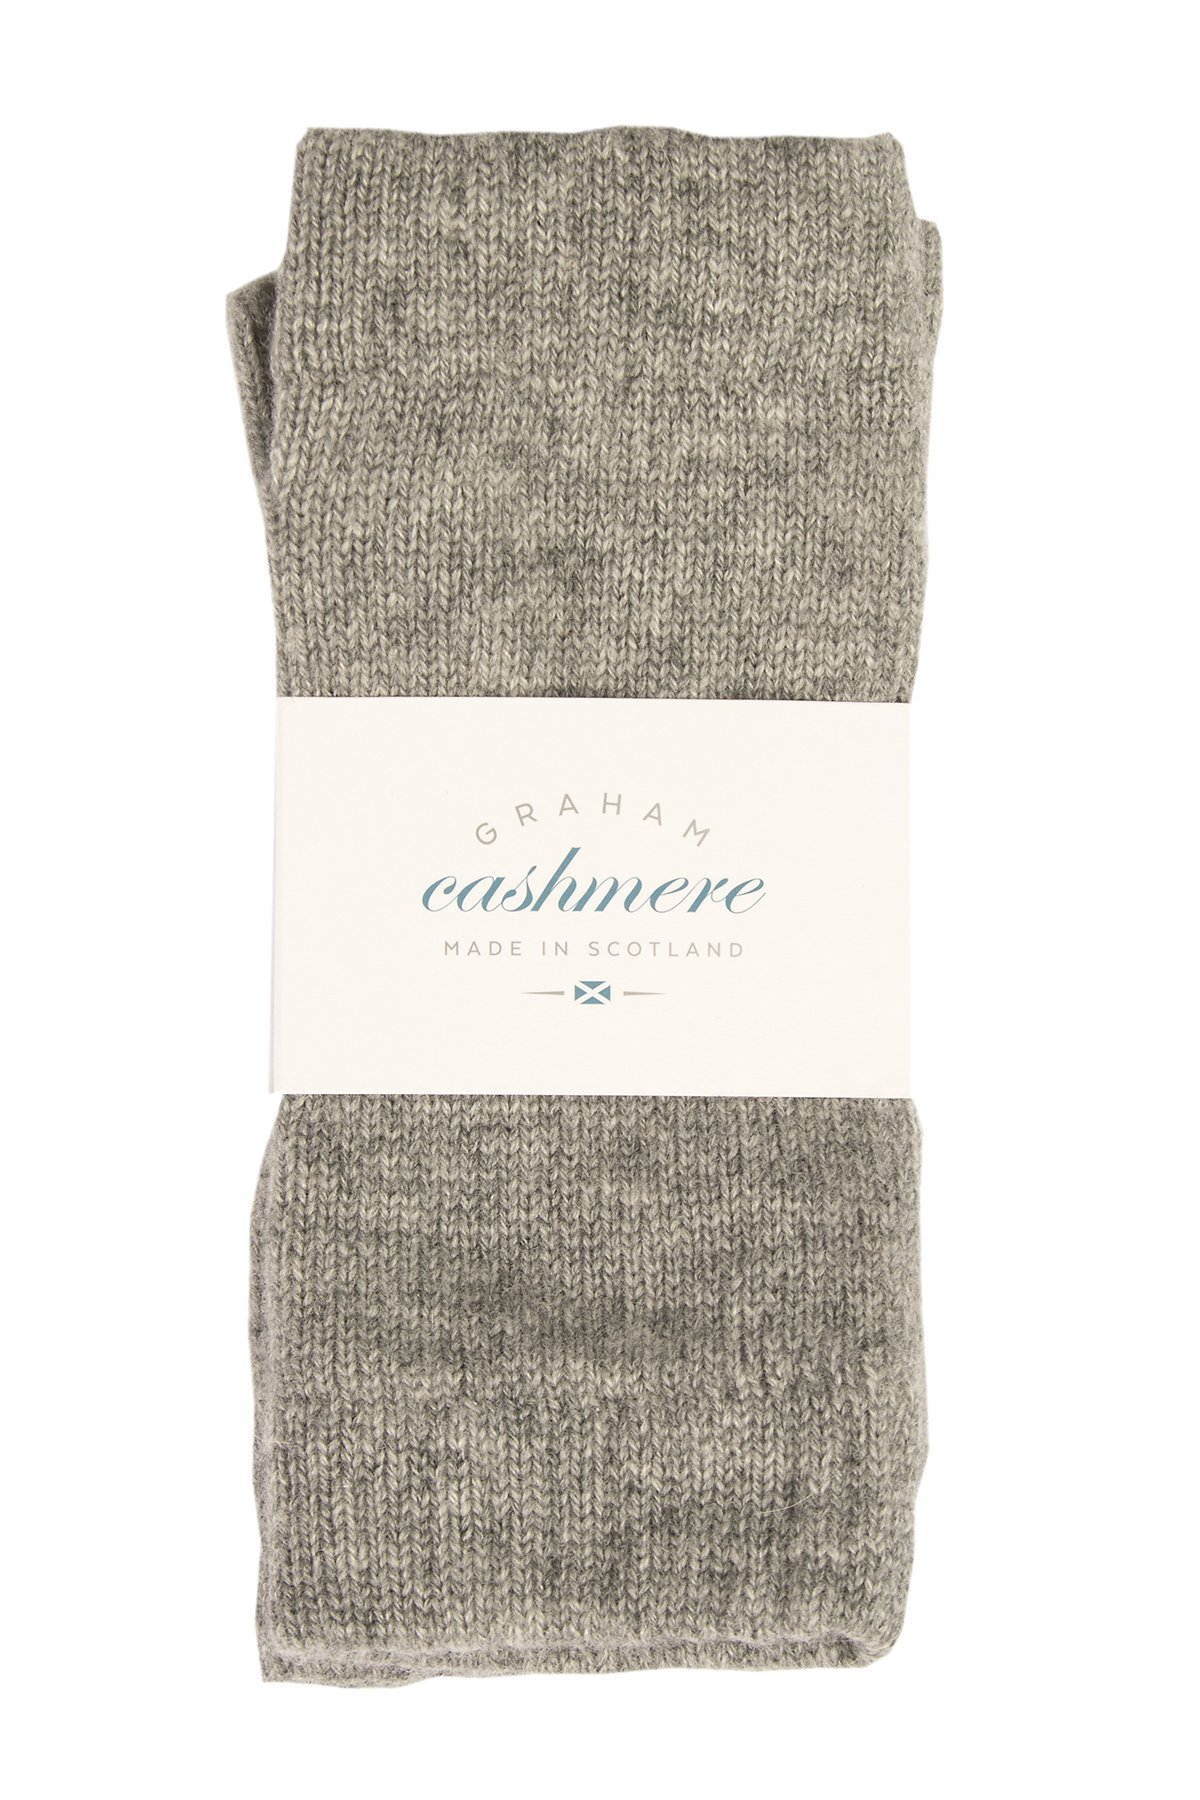 Graham Cashmere Women's Pure Scottish Cashmere Wristwarmers One size Gray